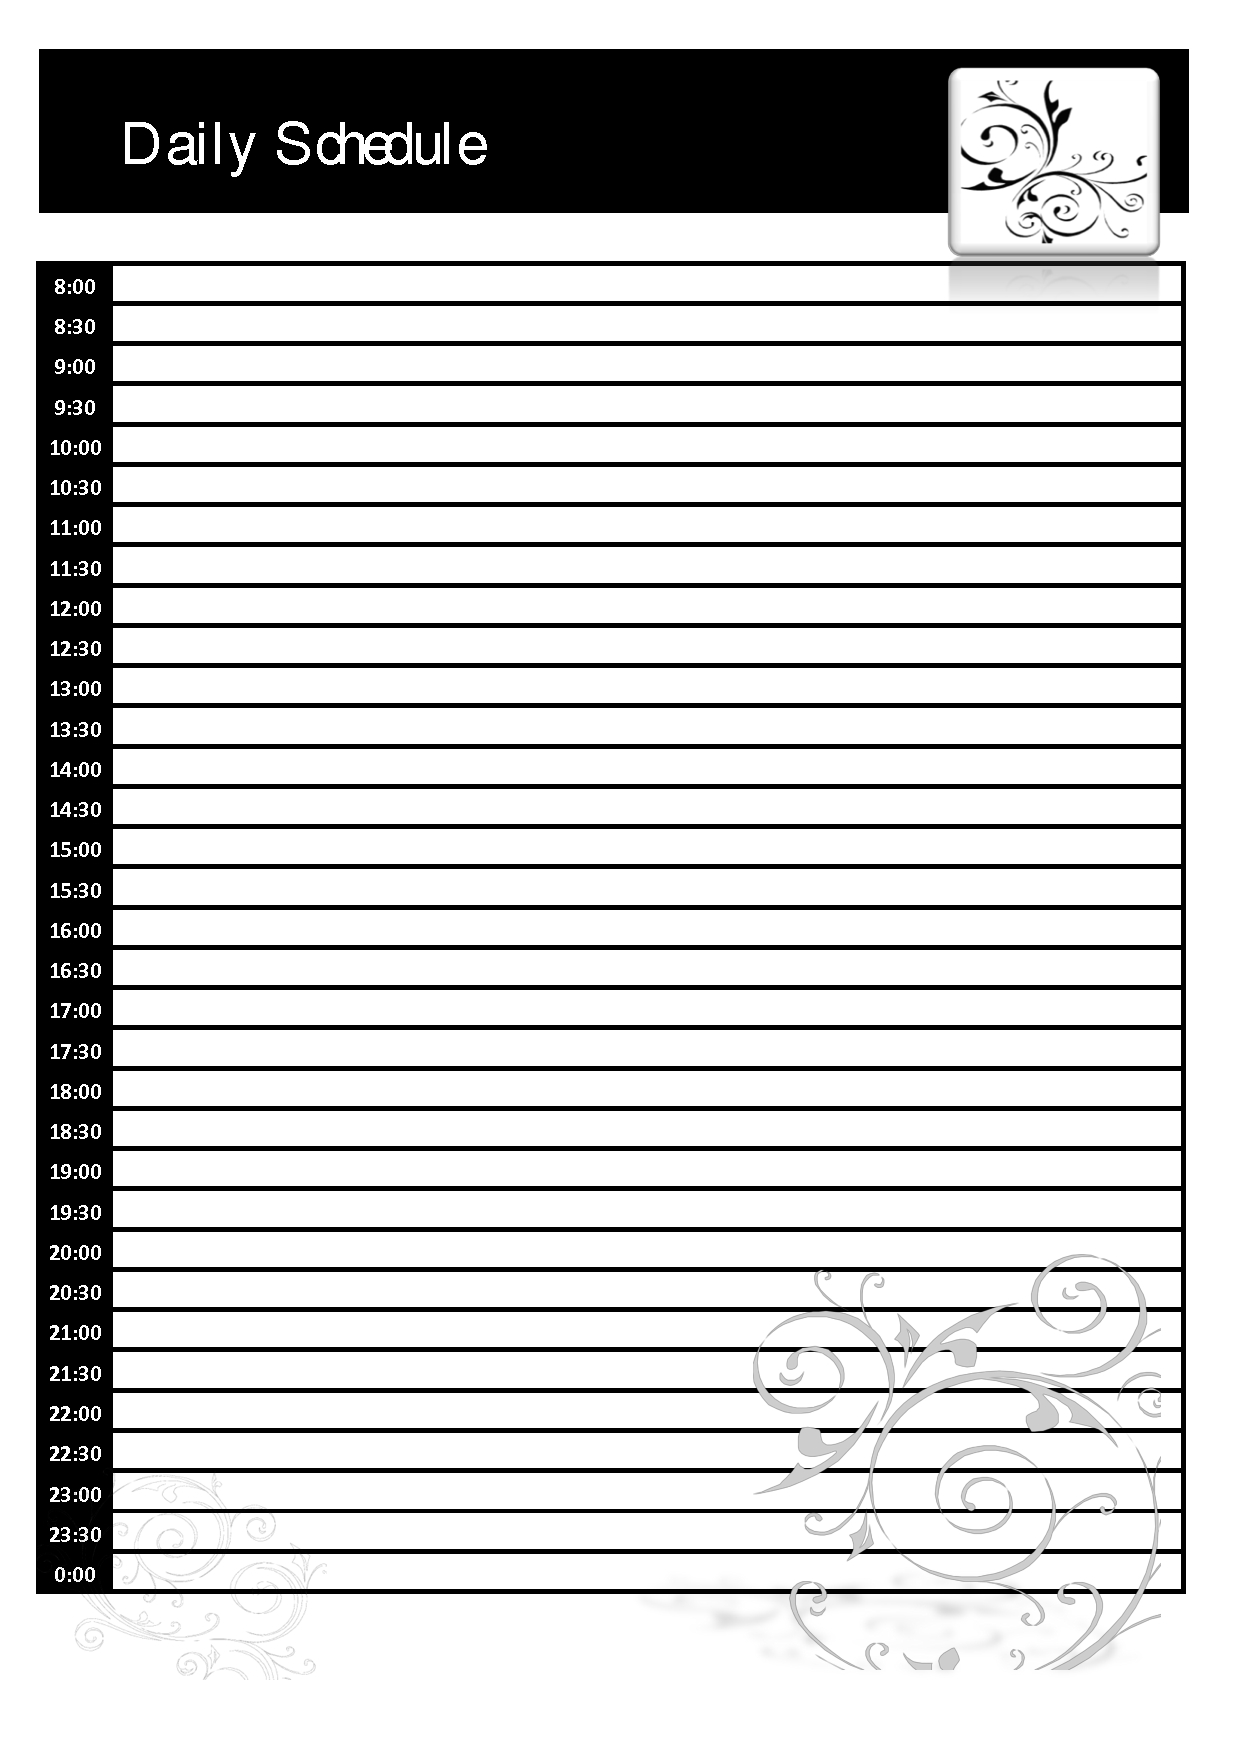 Template Ideas Free Printable Daily Schedule Blank With Printable Blank Daily Schedule Template